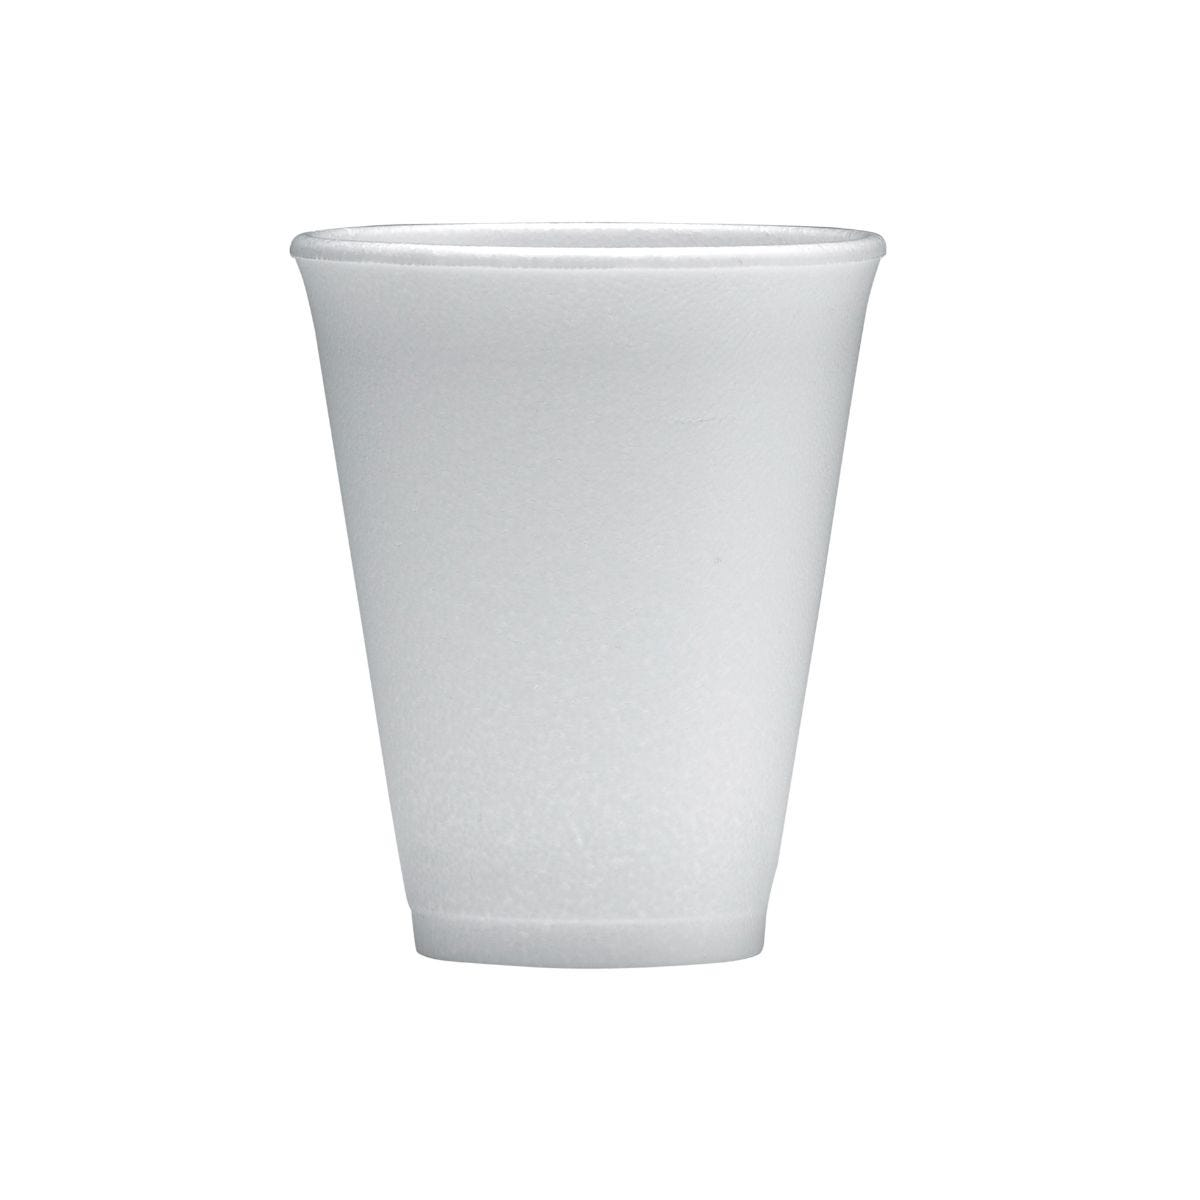 Image of 10oz Polystyrene Cups Pack 1000, White